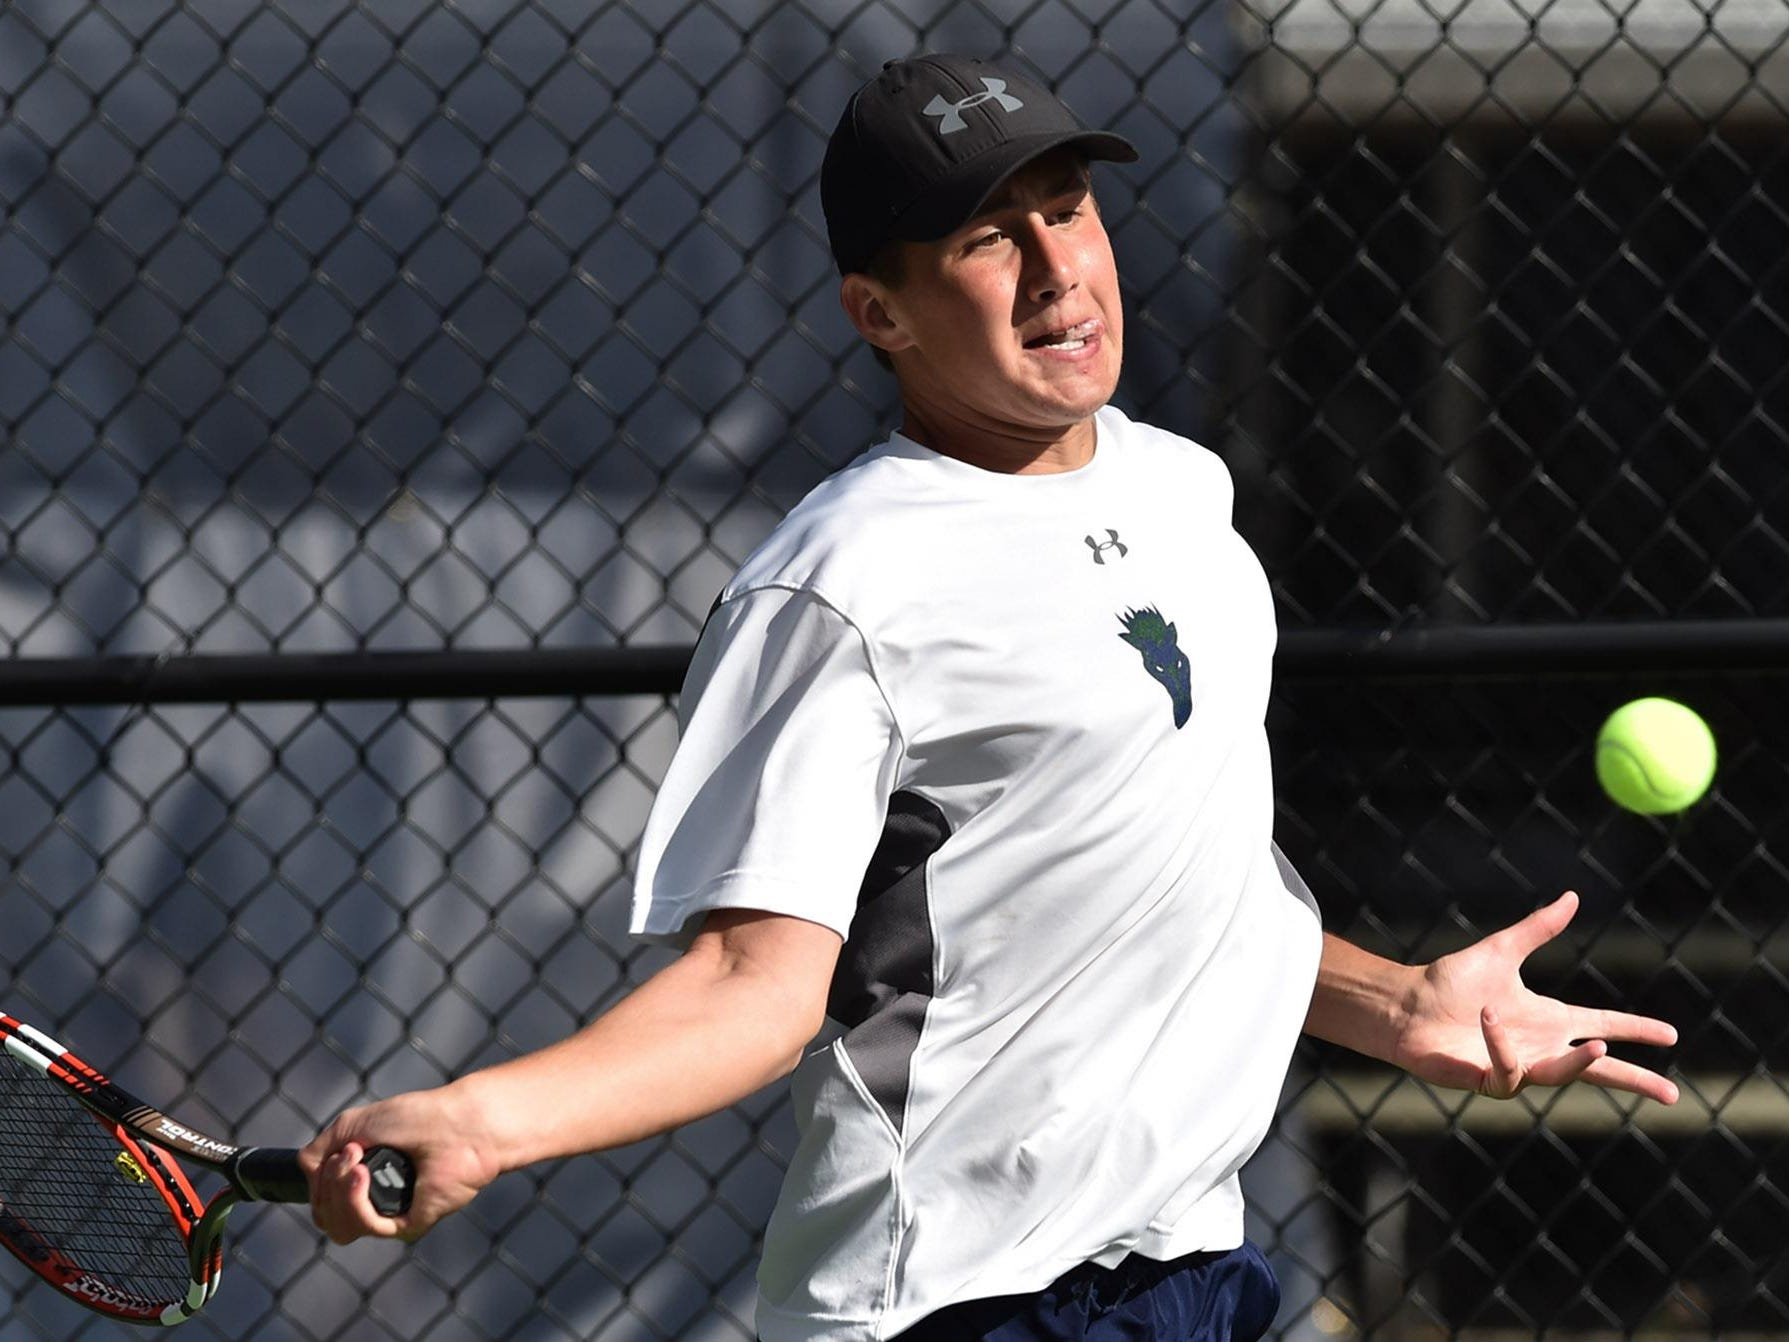 Damonte Ranch's Tim Zagar winds up to hit a forehand to opponent Natale Castelli, also of Damonte Ranch, during the Northern Region boys singles final at the Caughlin Athletic Club on Monday.